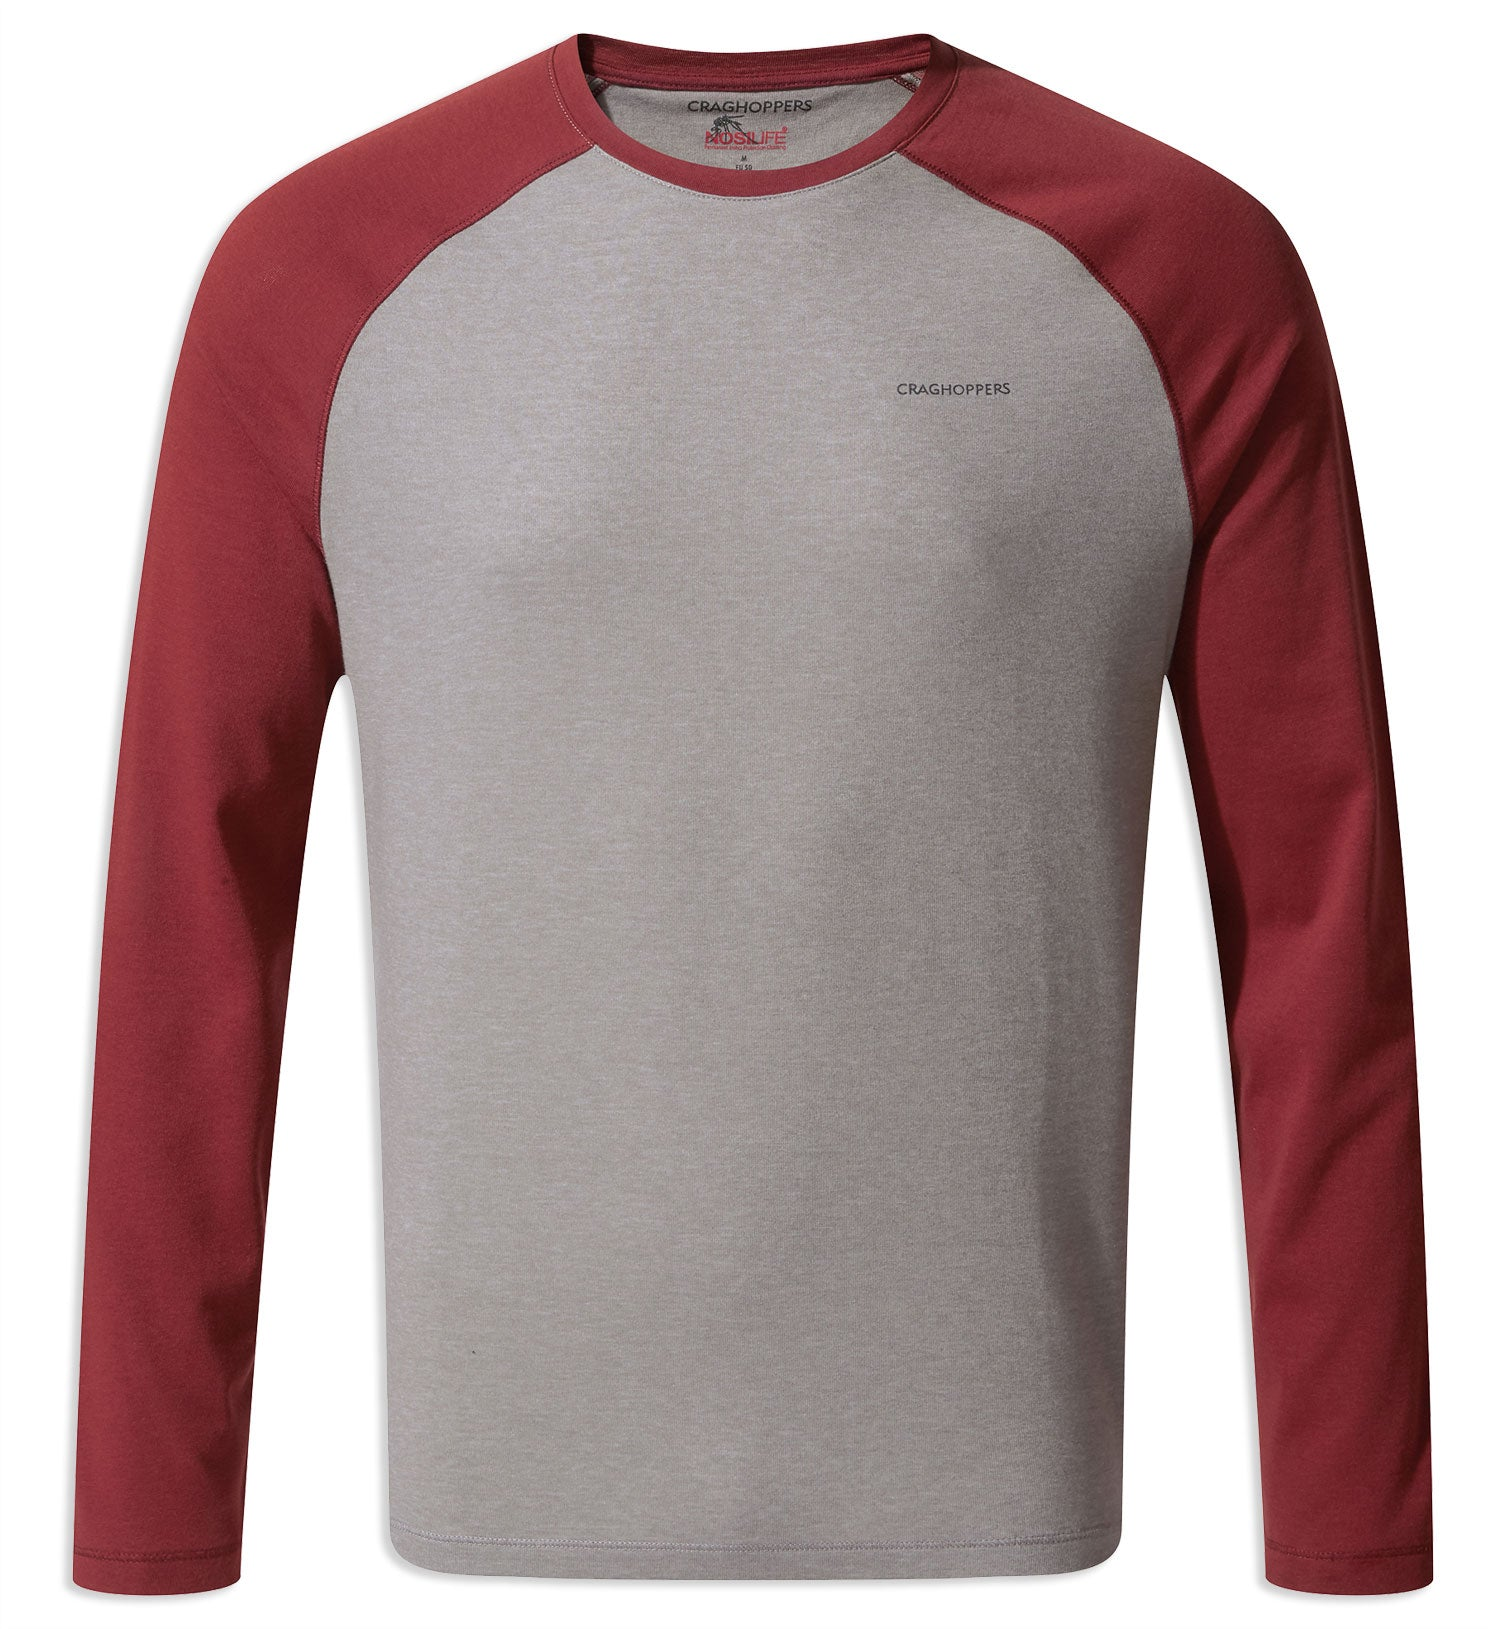 Craghoppers NosiLife Bayame Long Sleeved Tee in grey and red